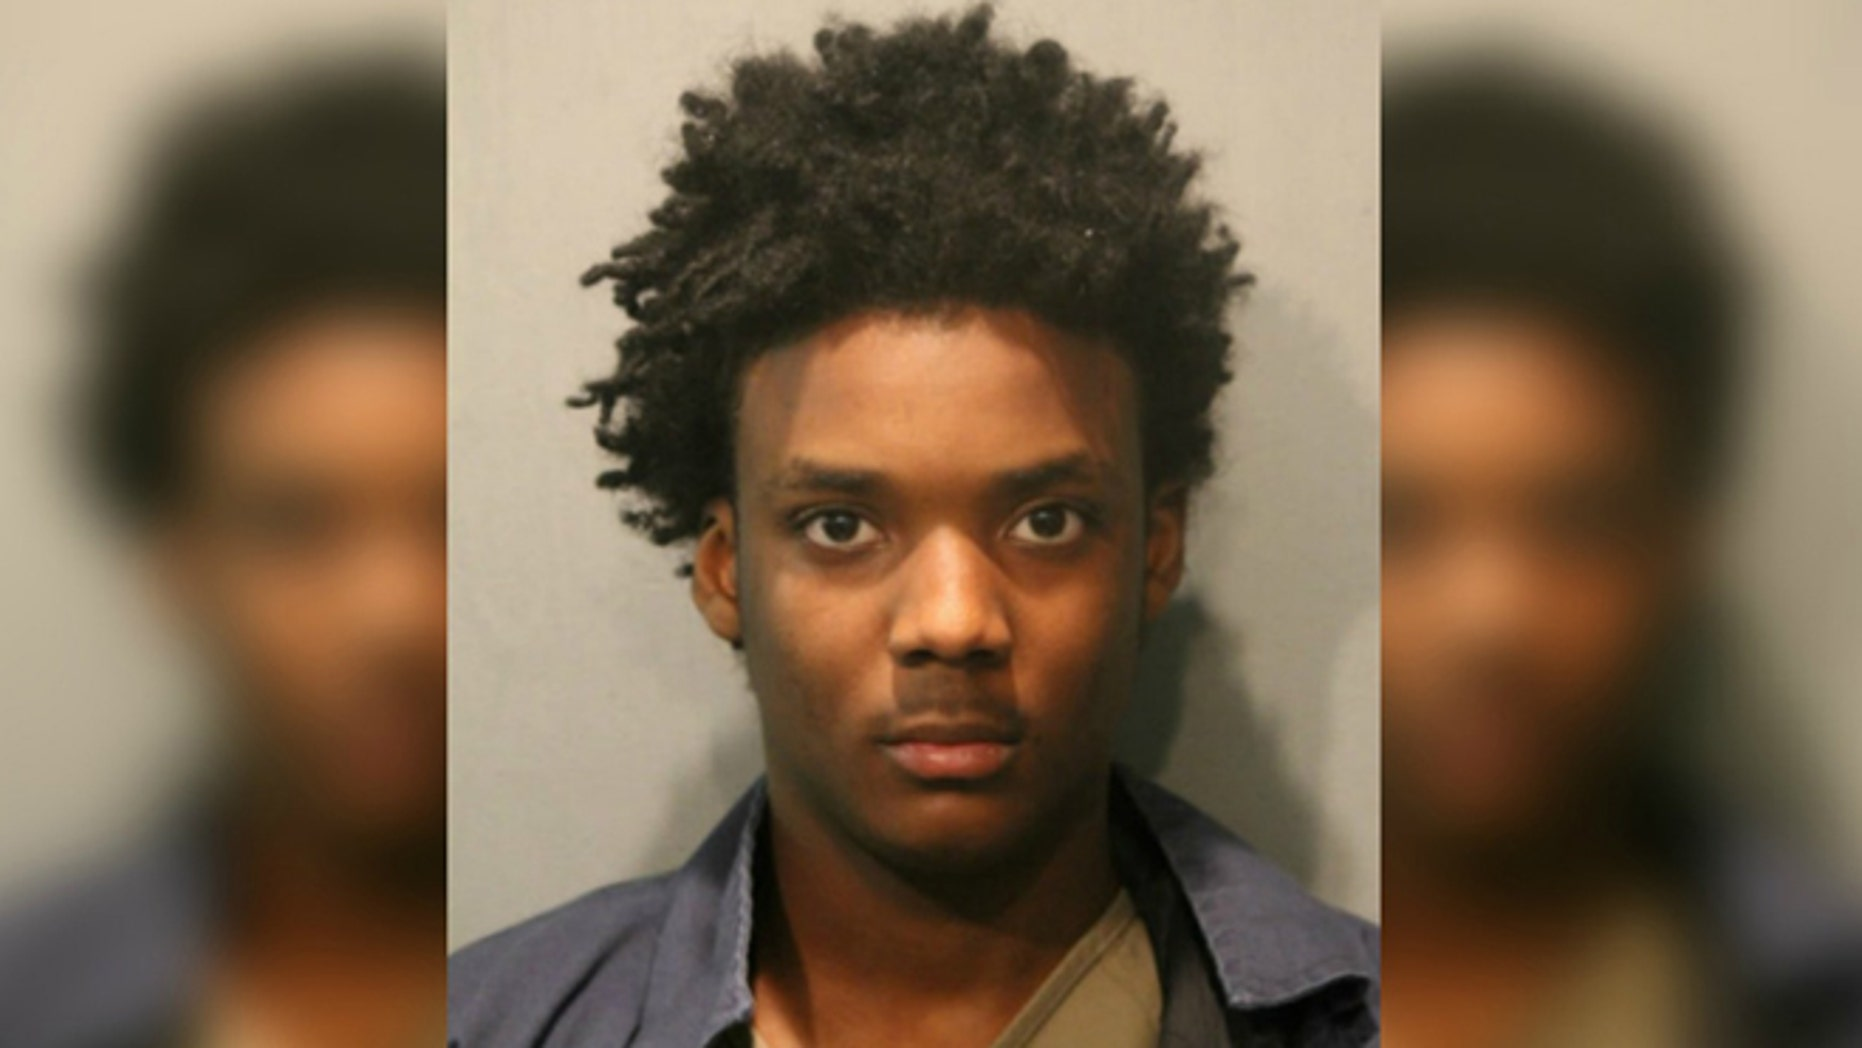 Mugshot for Anthony Moore, 18, charged with murder of Chicago police officer's son.